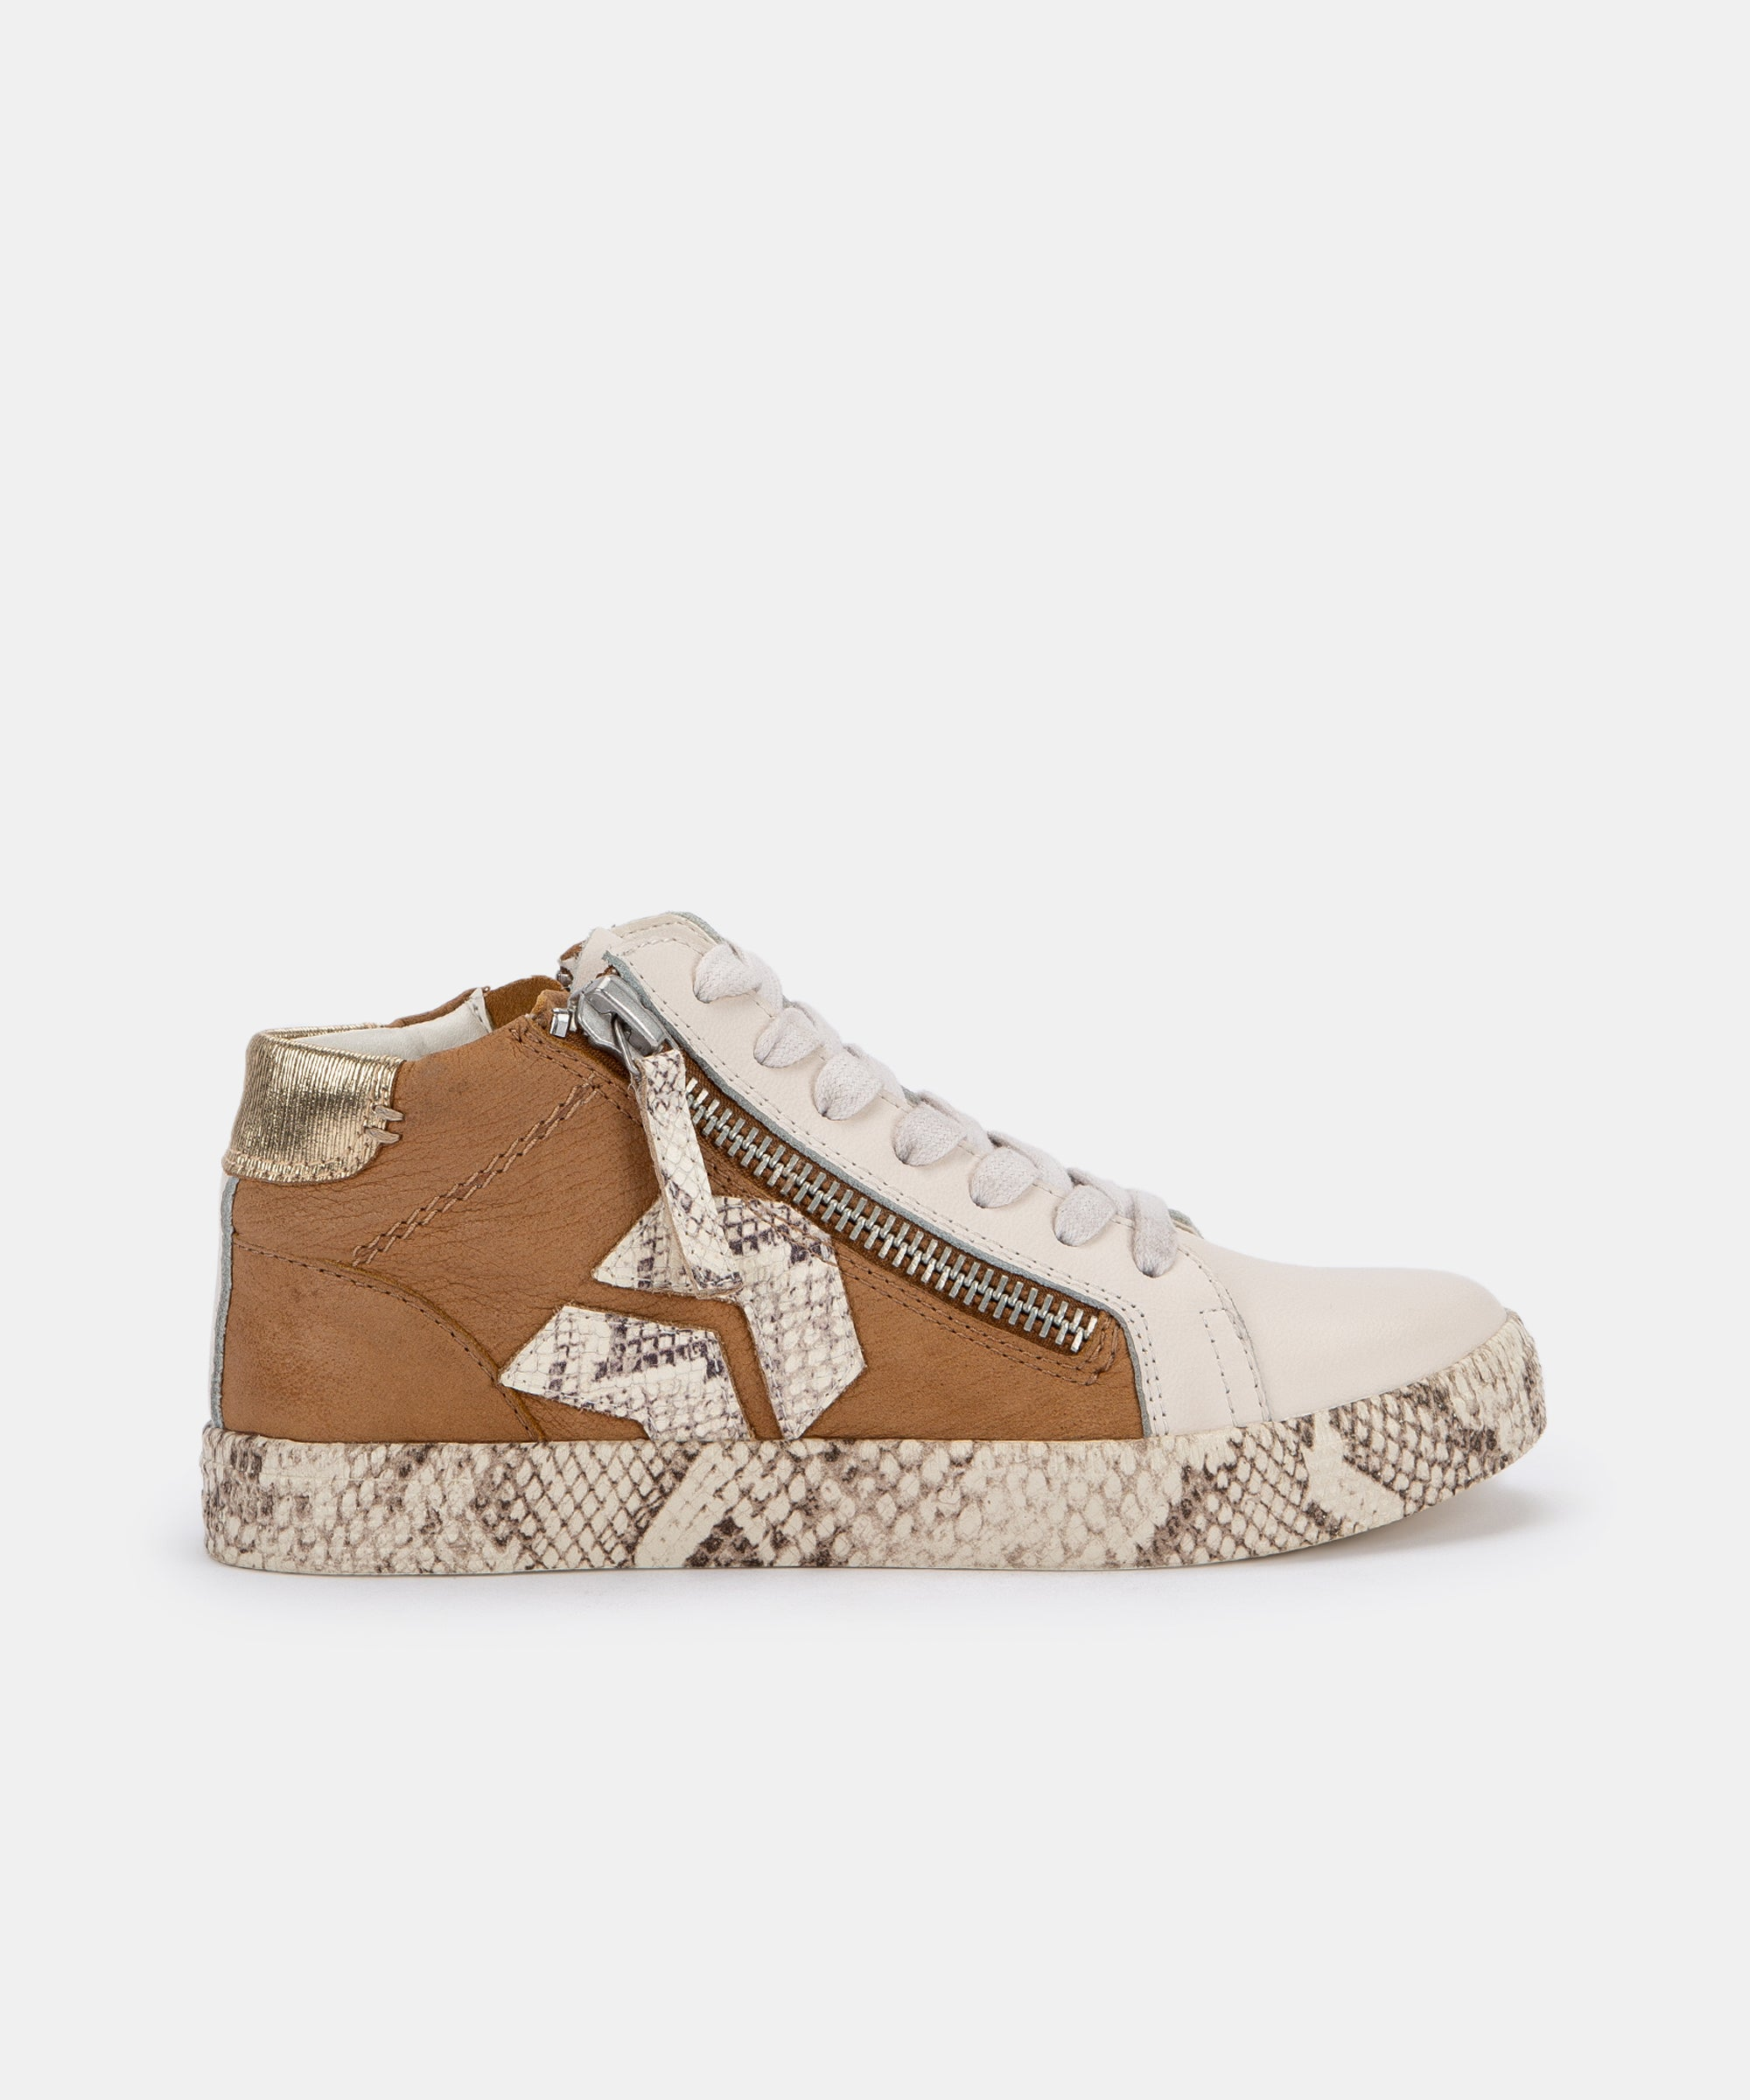 ZONYA SNEAKERS IN TAN MULTI NUBUCK